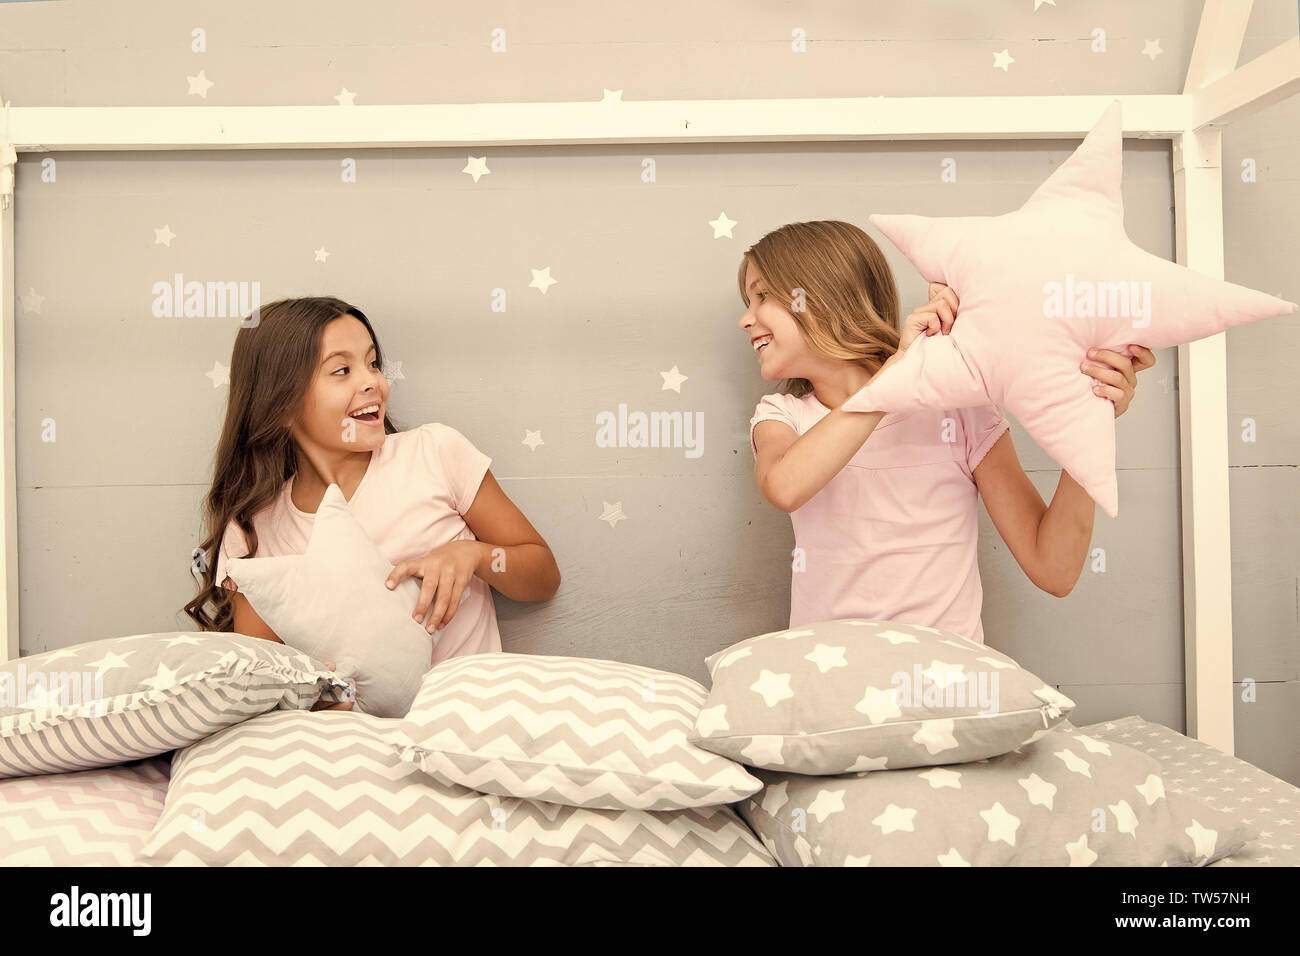 Girls sleepover party ideas. Soulmates girls having fun sleepover party. Girls happy best friends in pajamas with pillows sleepover party. Pillow figh - Stock Image